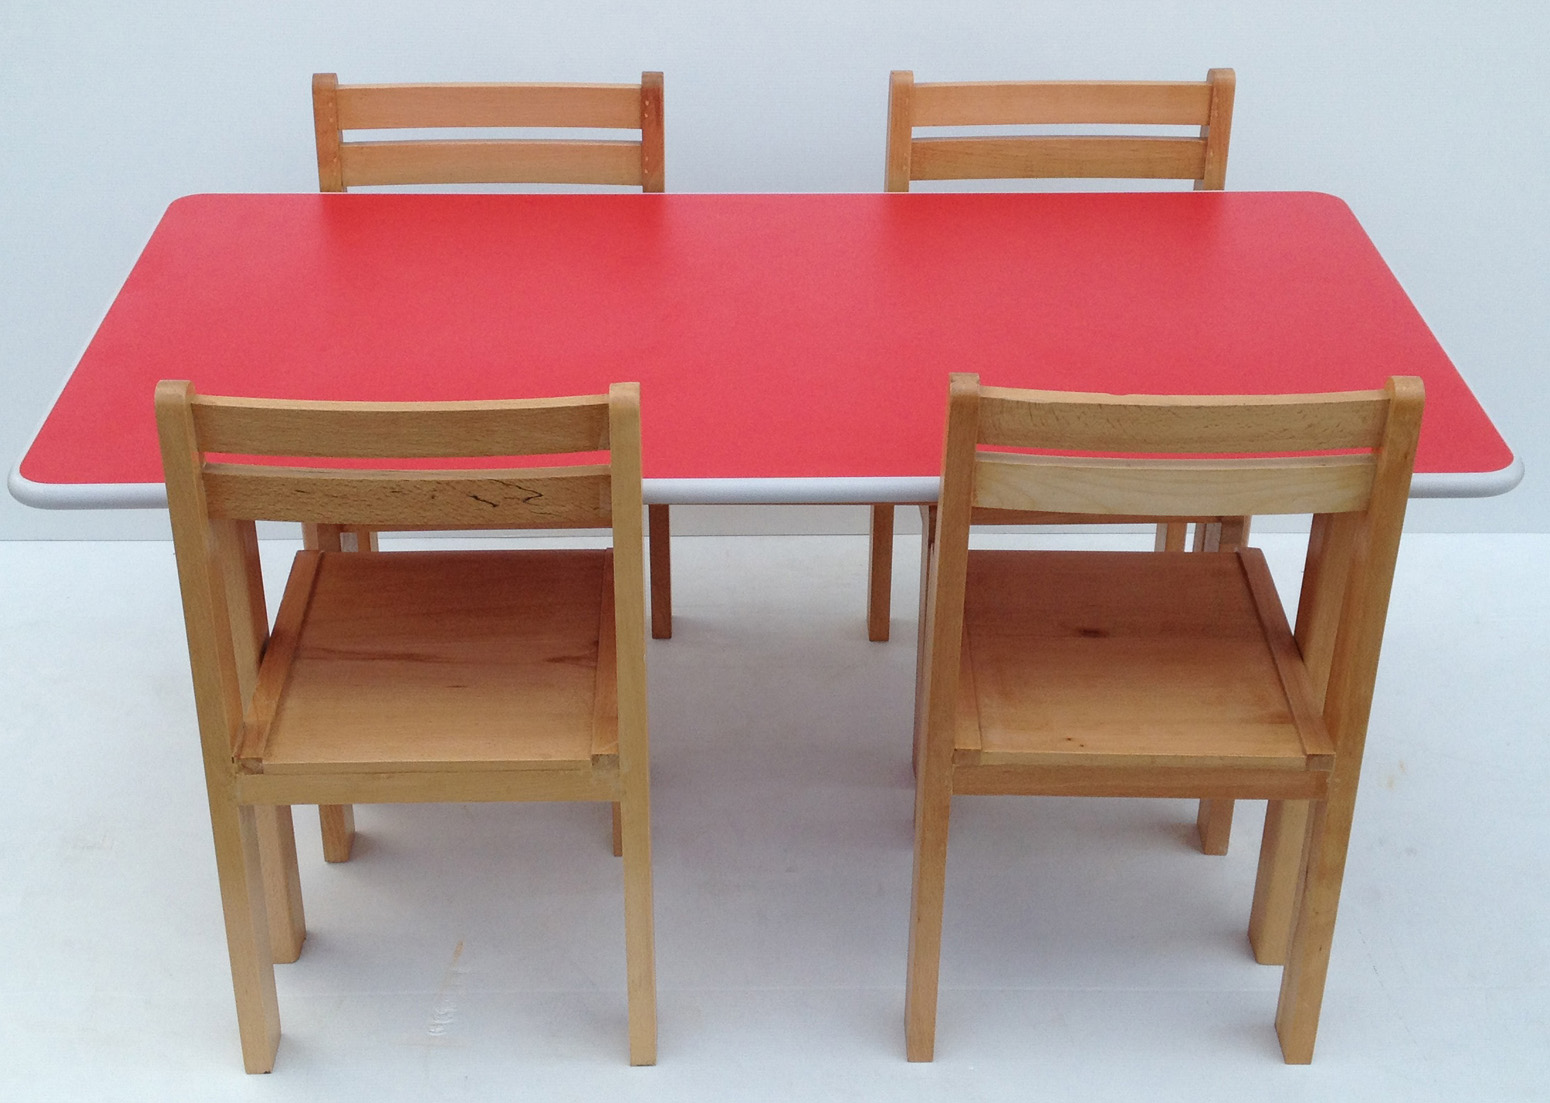 preschool table and chair set. kids preschool beech wood table and chairs set chair & Preschool Table And Chair Set. Kids Preschool Beech Wood Table And ...